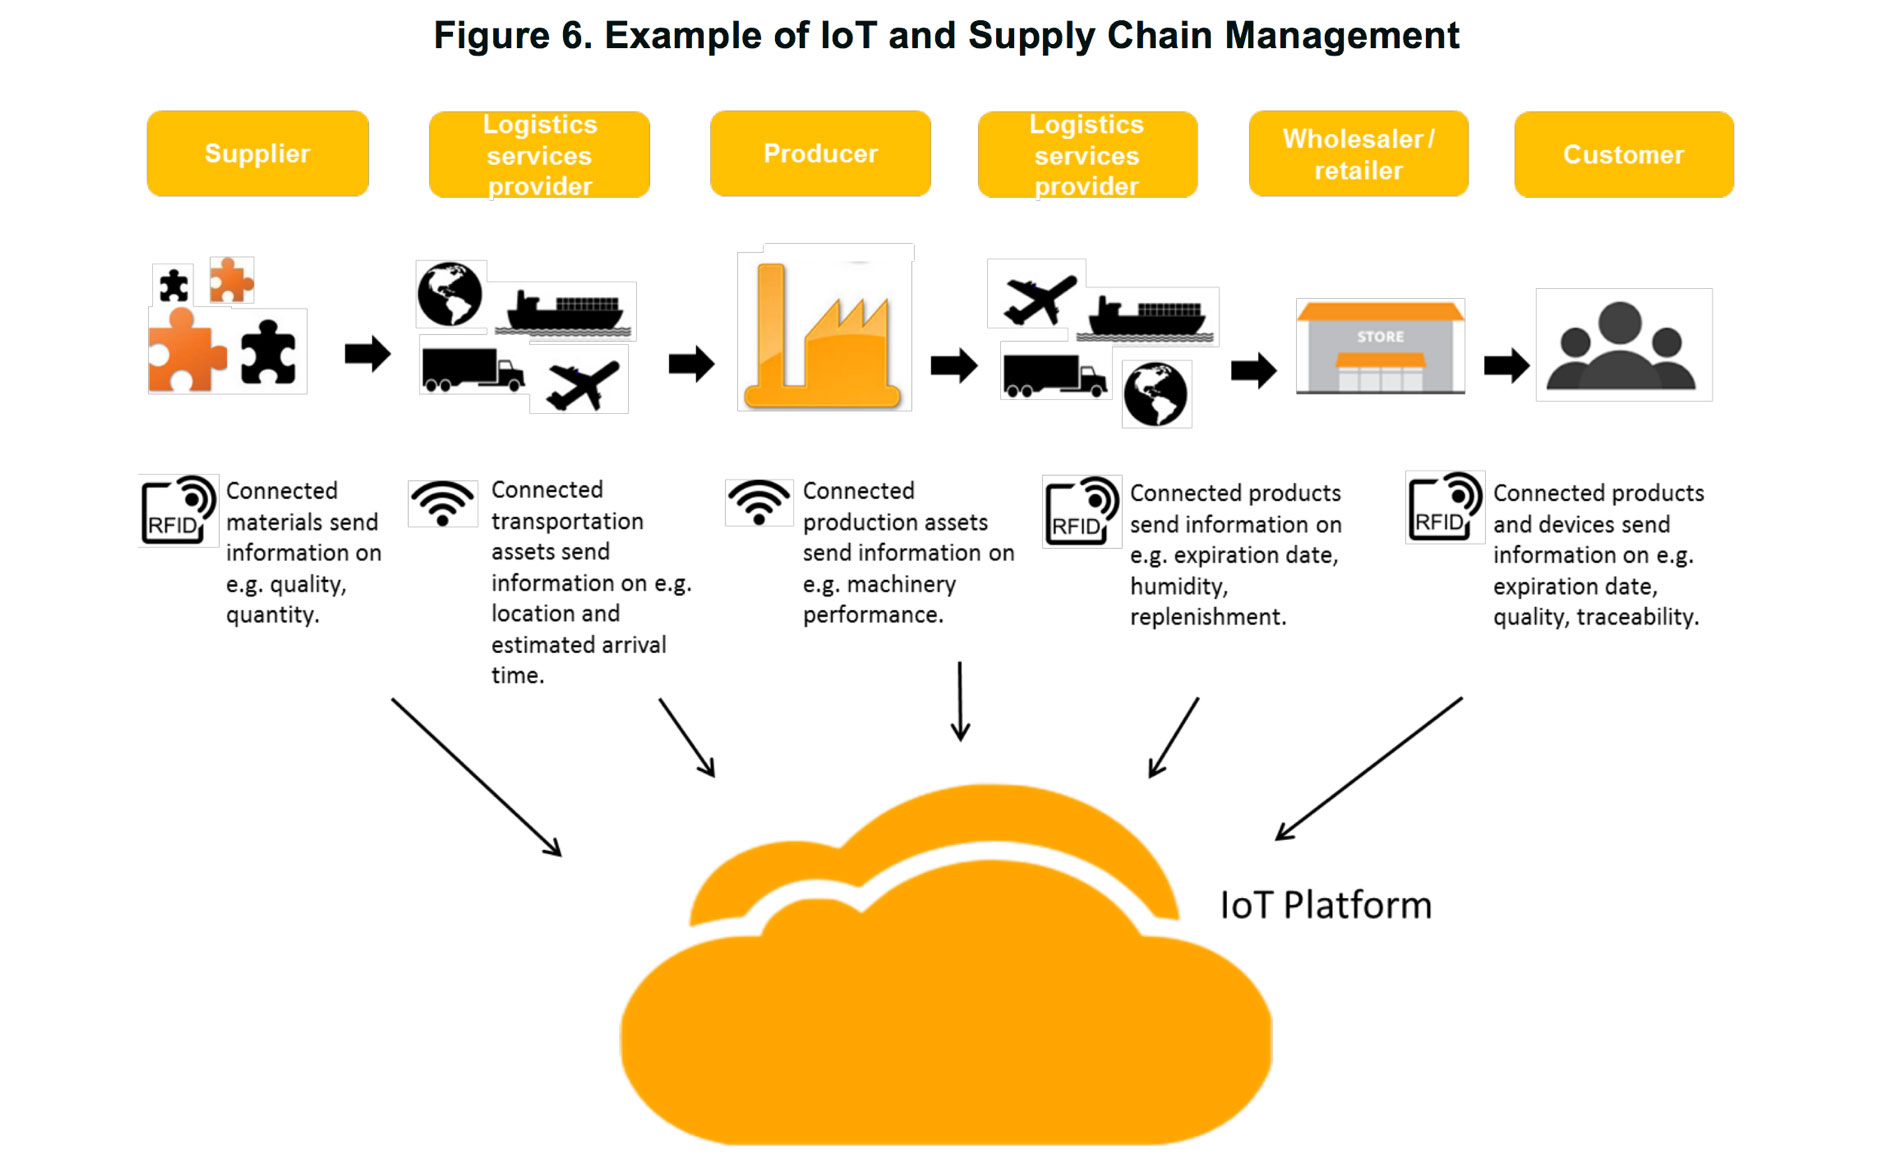 Example of IoT and supply chain management